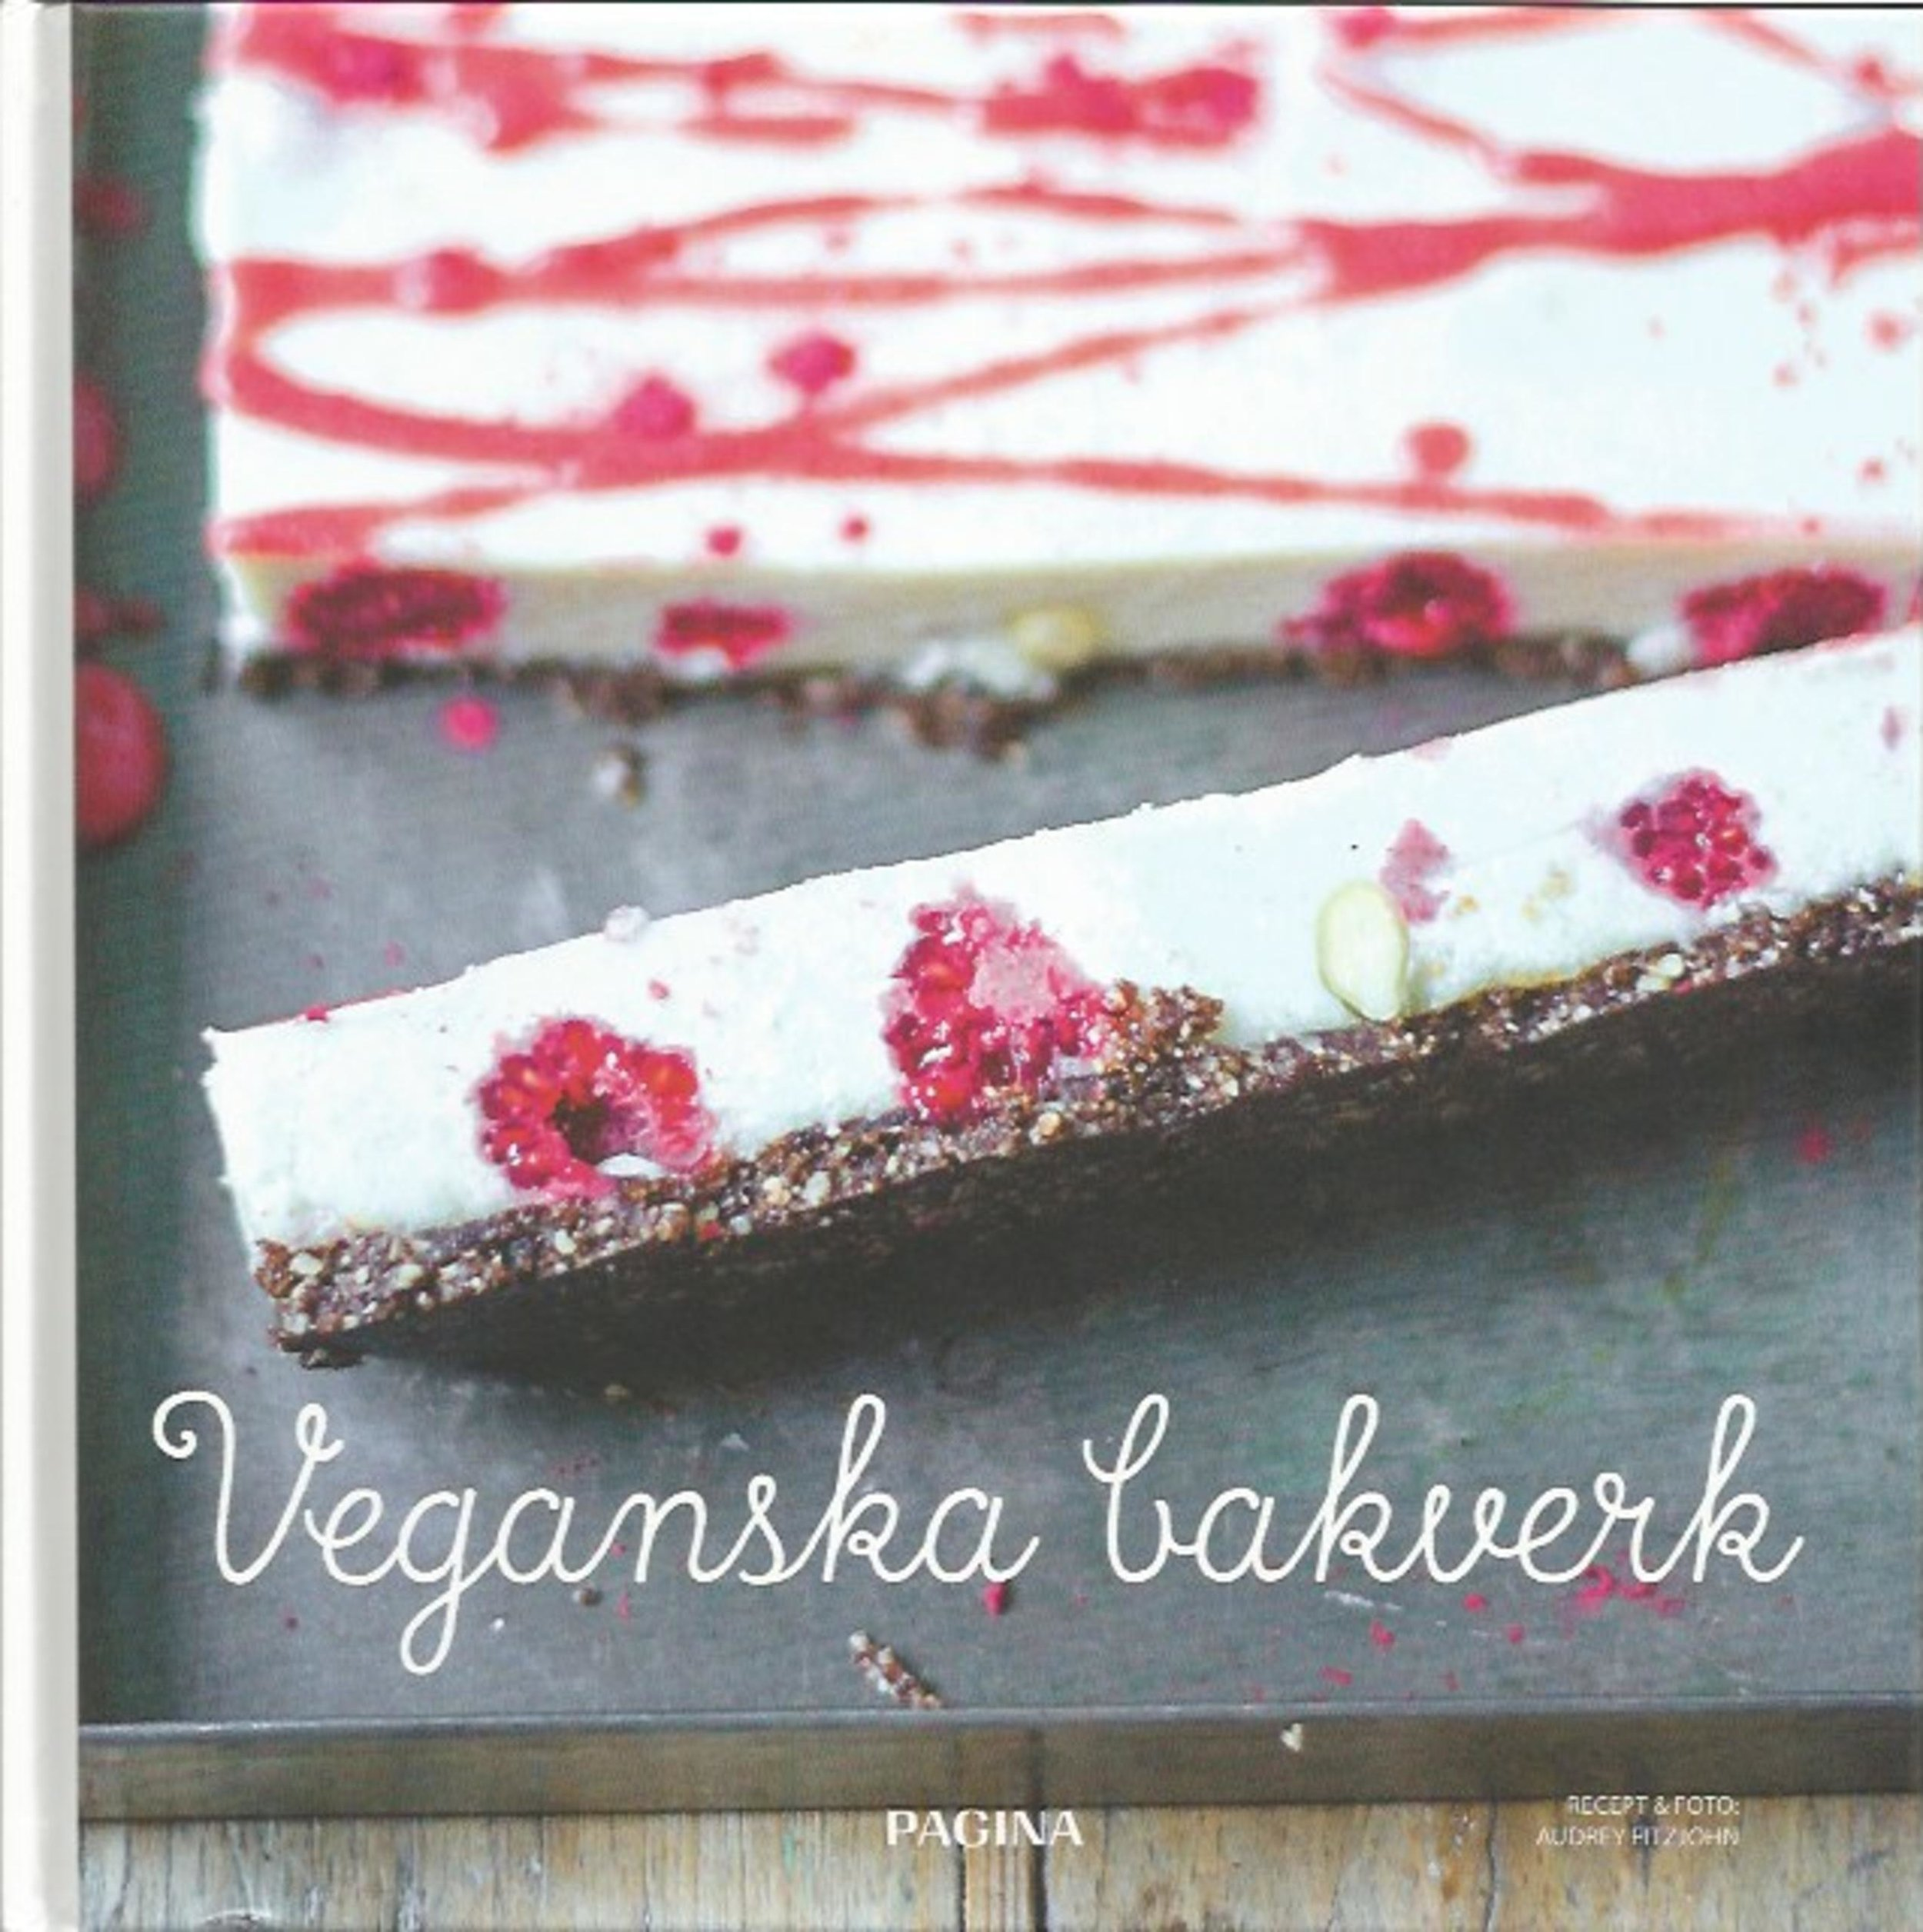 vegan swedish-page-001.jpg